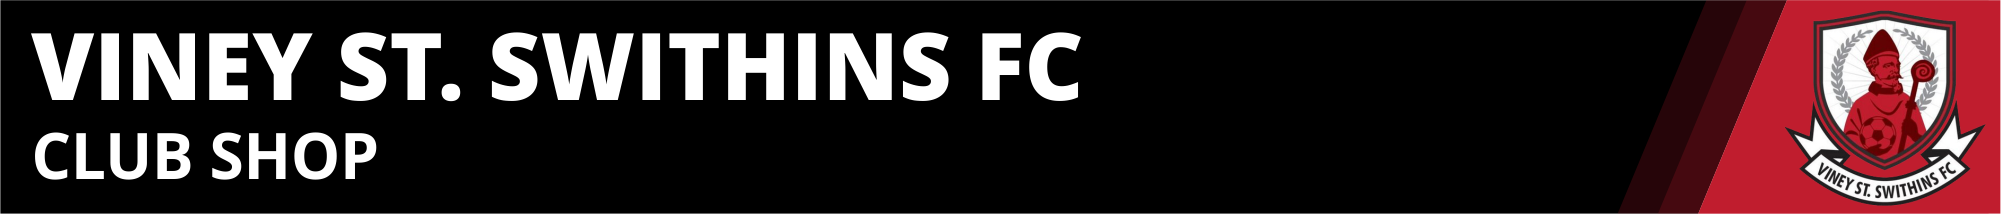 viney-st.-swithins-fc-club-shop-badge.png